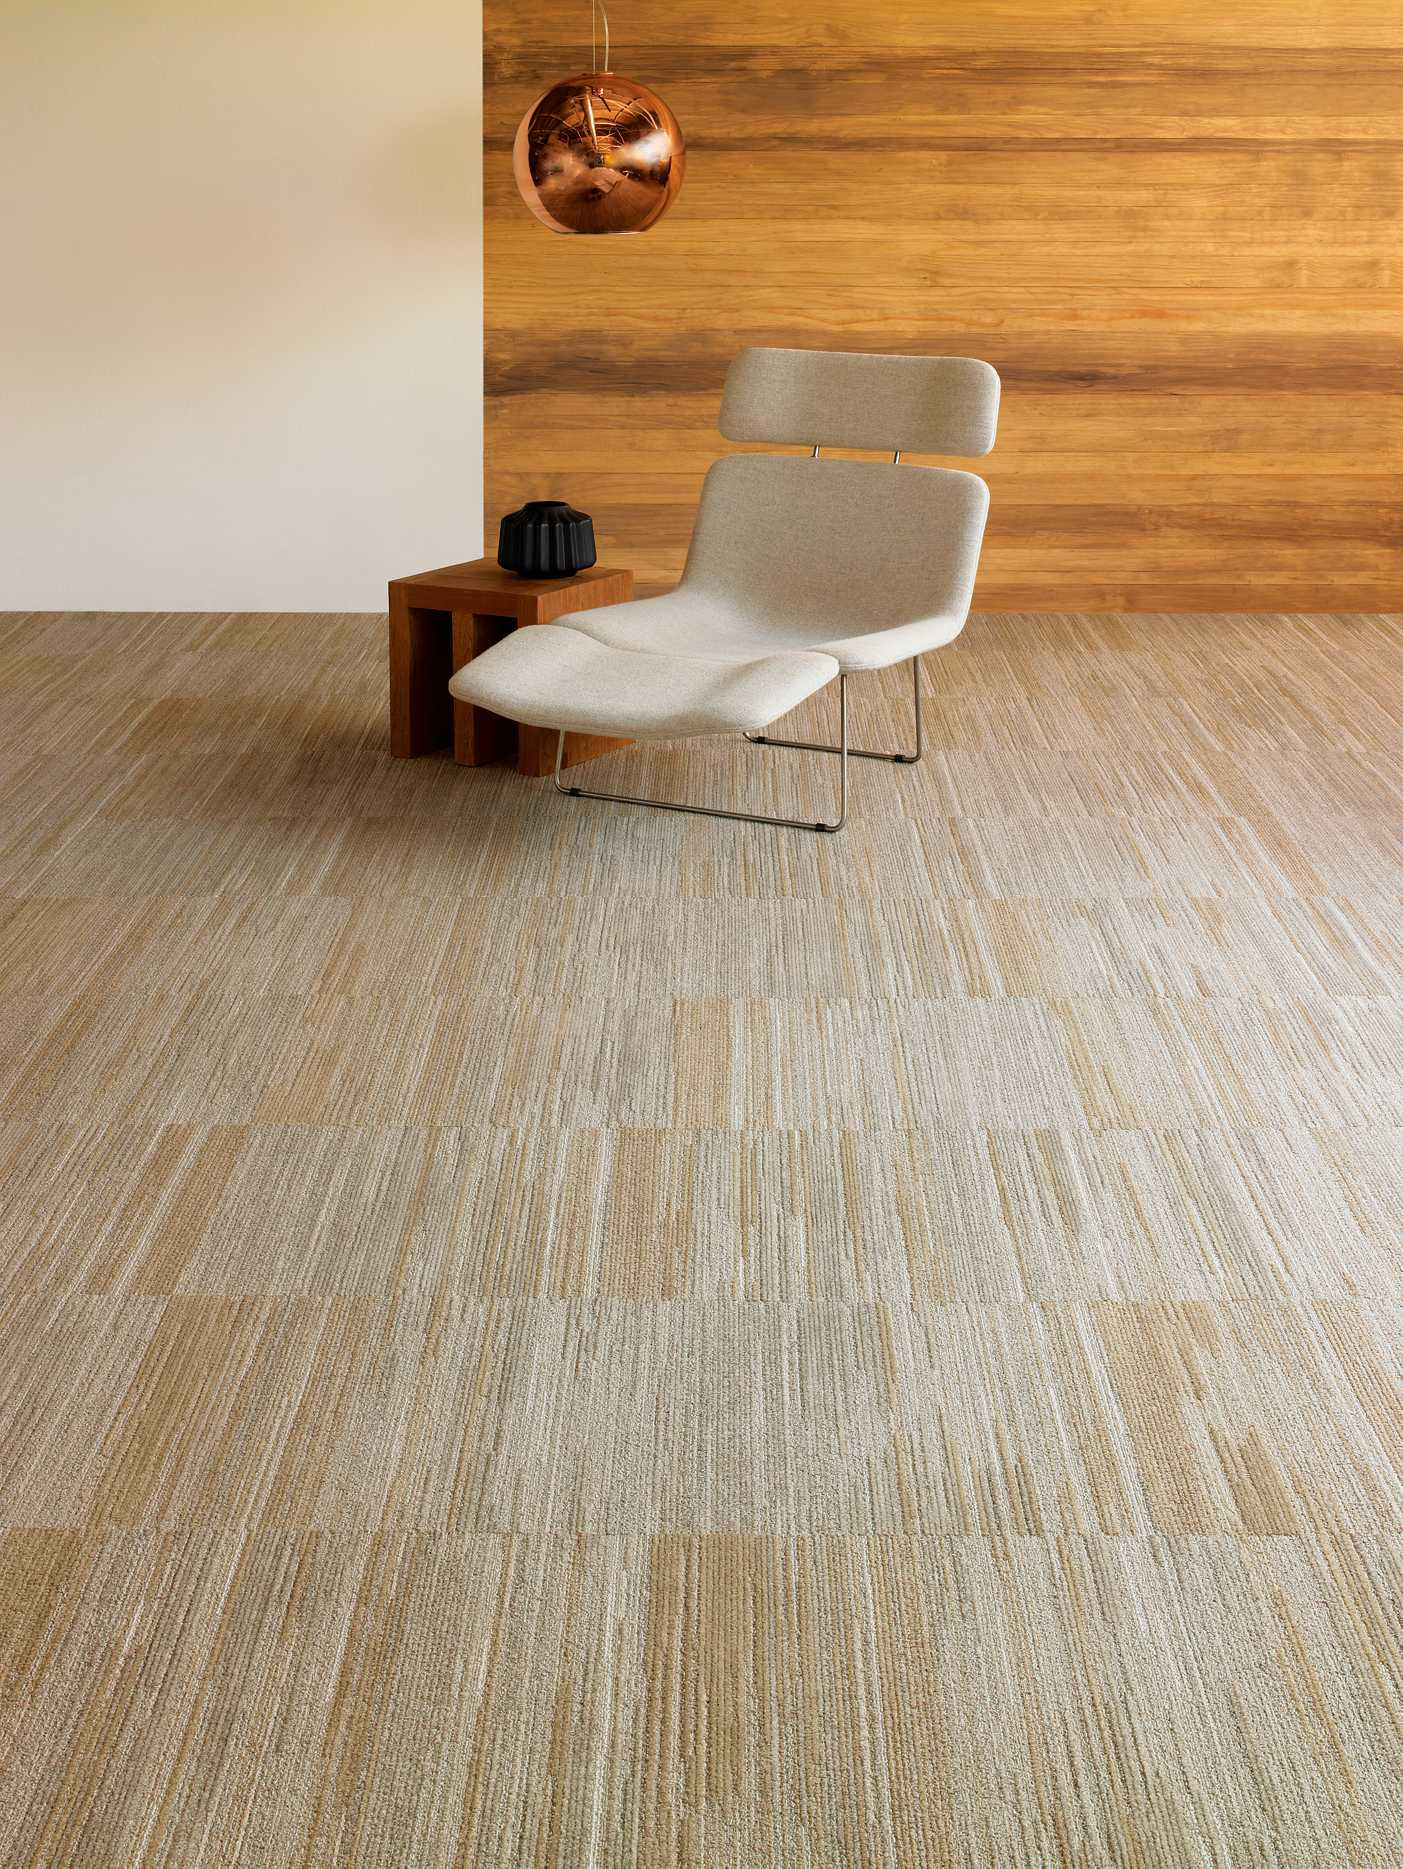 hardwood flooring inc elmsford ny of ingrain tile 59339 shaw contract shaw hospitality regarding 59339